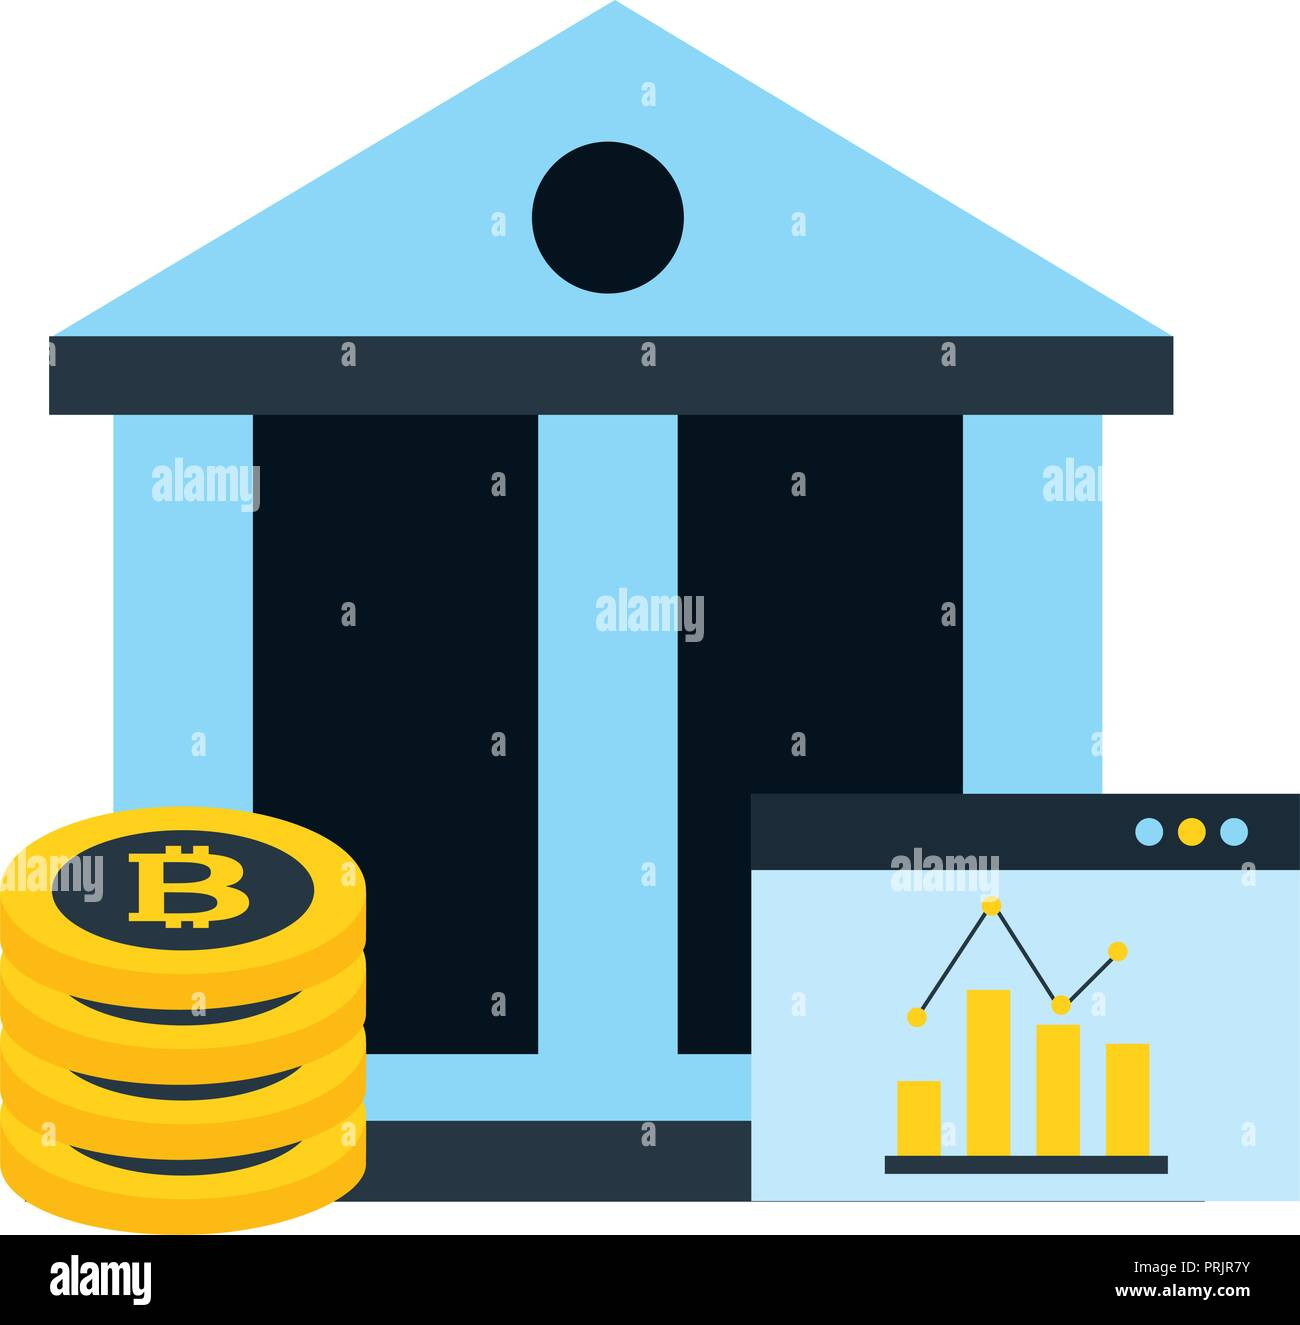 business bank bitcoin cryptocurrency statistics web report